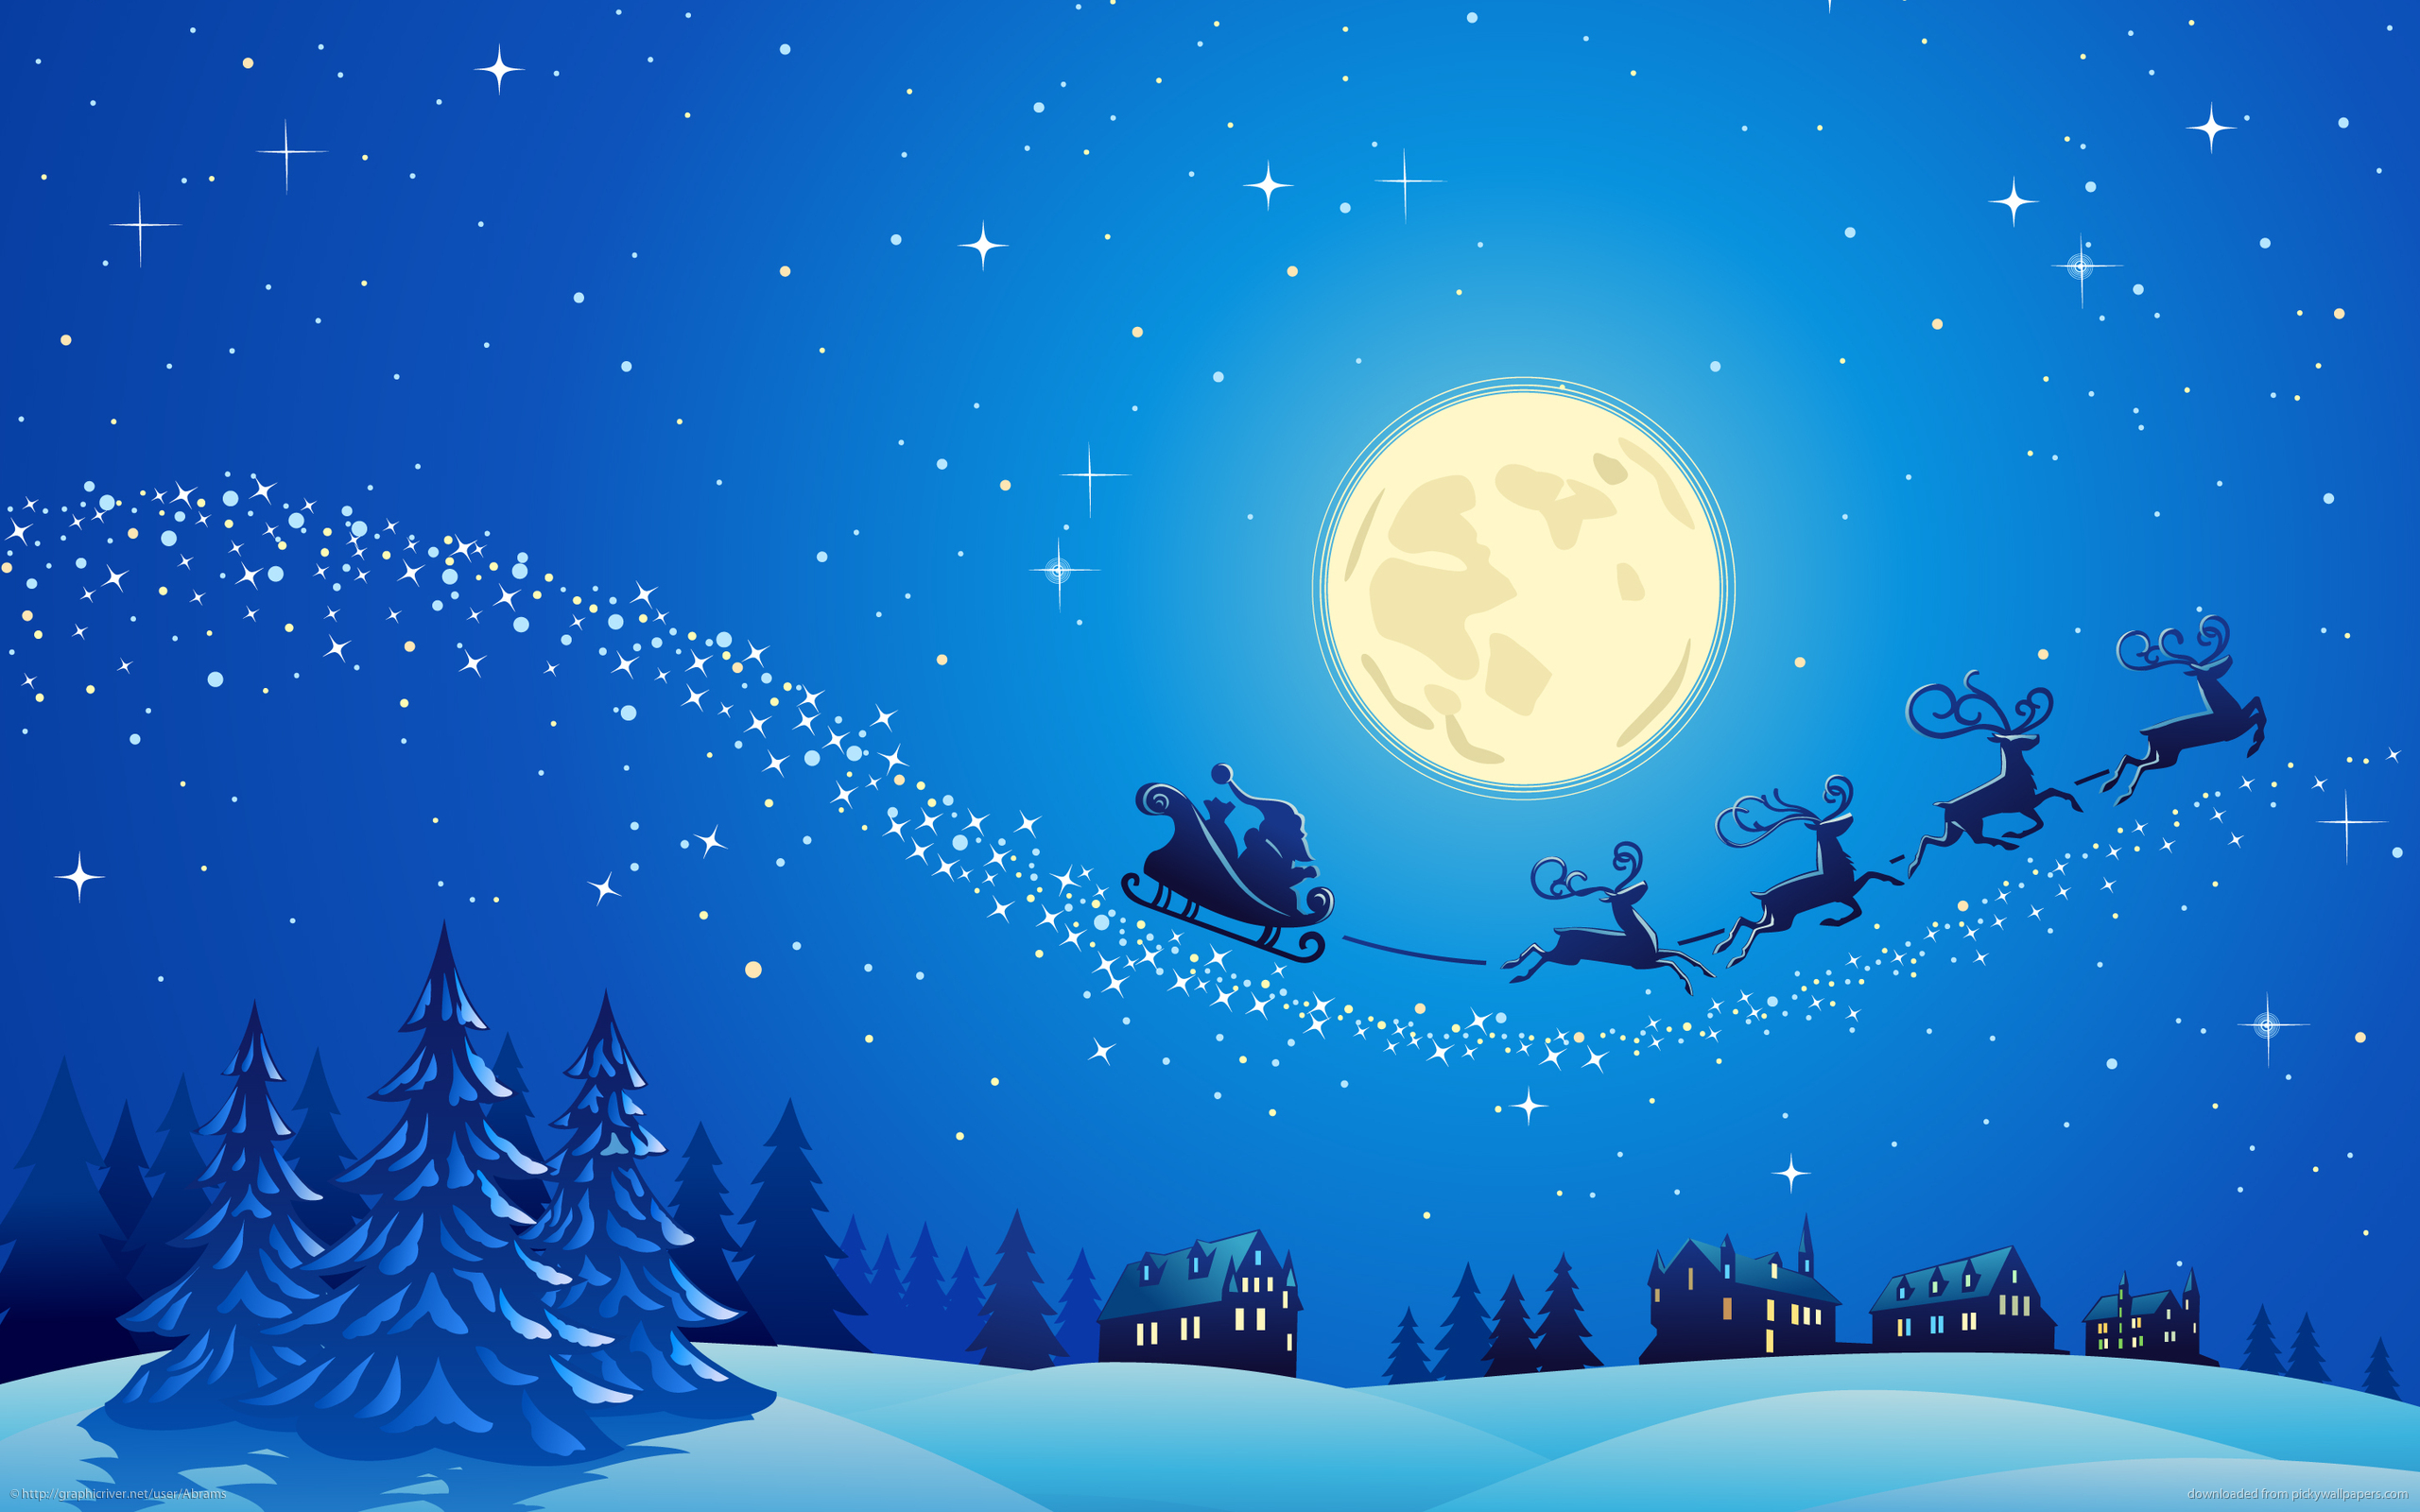 11 winter christmas 12 winter christmas tree frost 13 vector 2560x1600